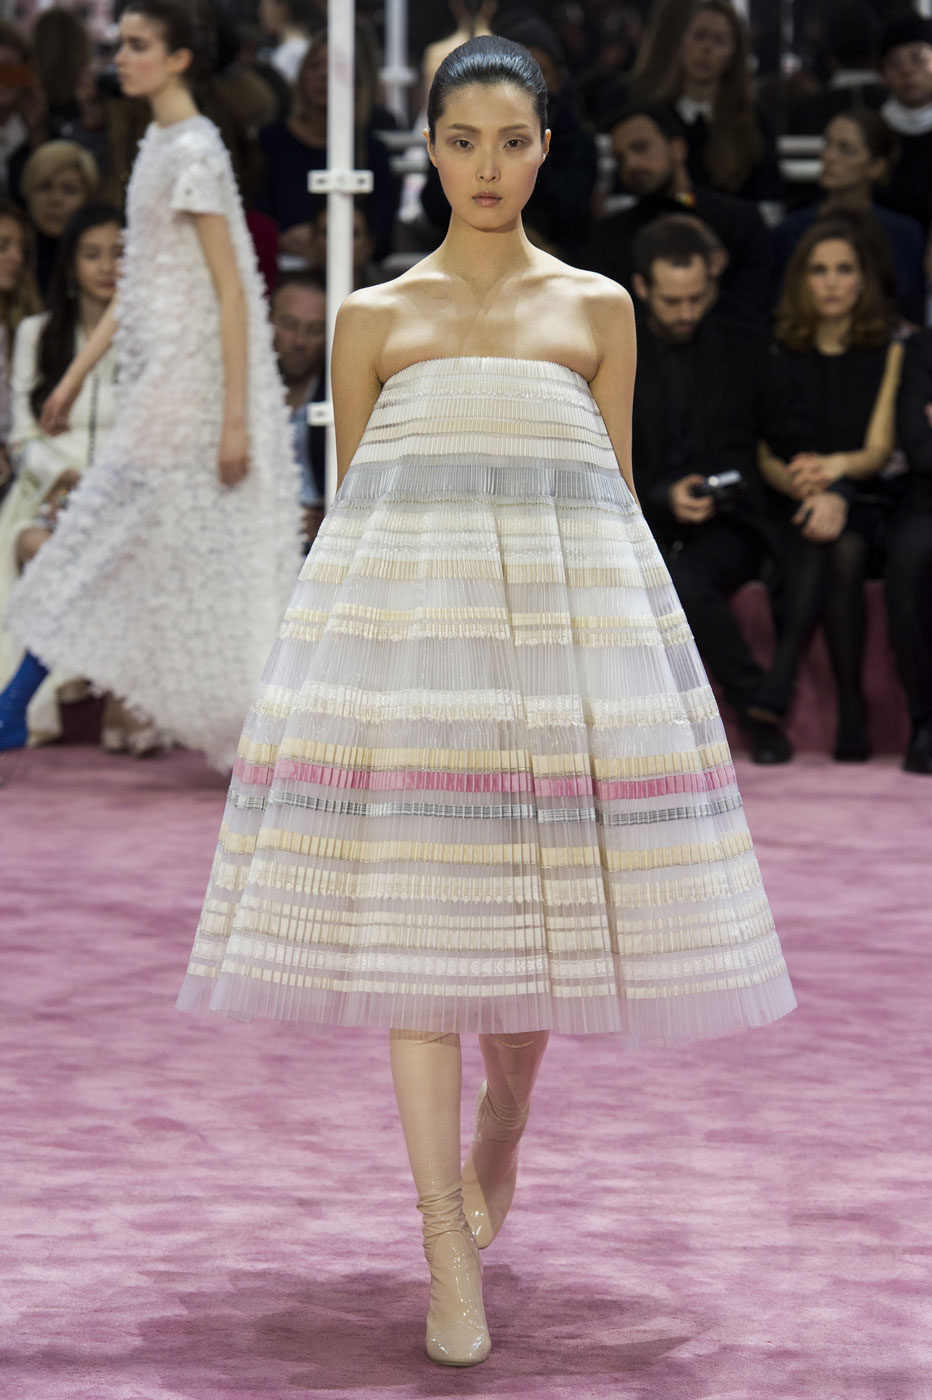 Christian-Dior-fashion-runway-show-haute-couture-paris-spring-summer-2015-the-impression-104